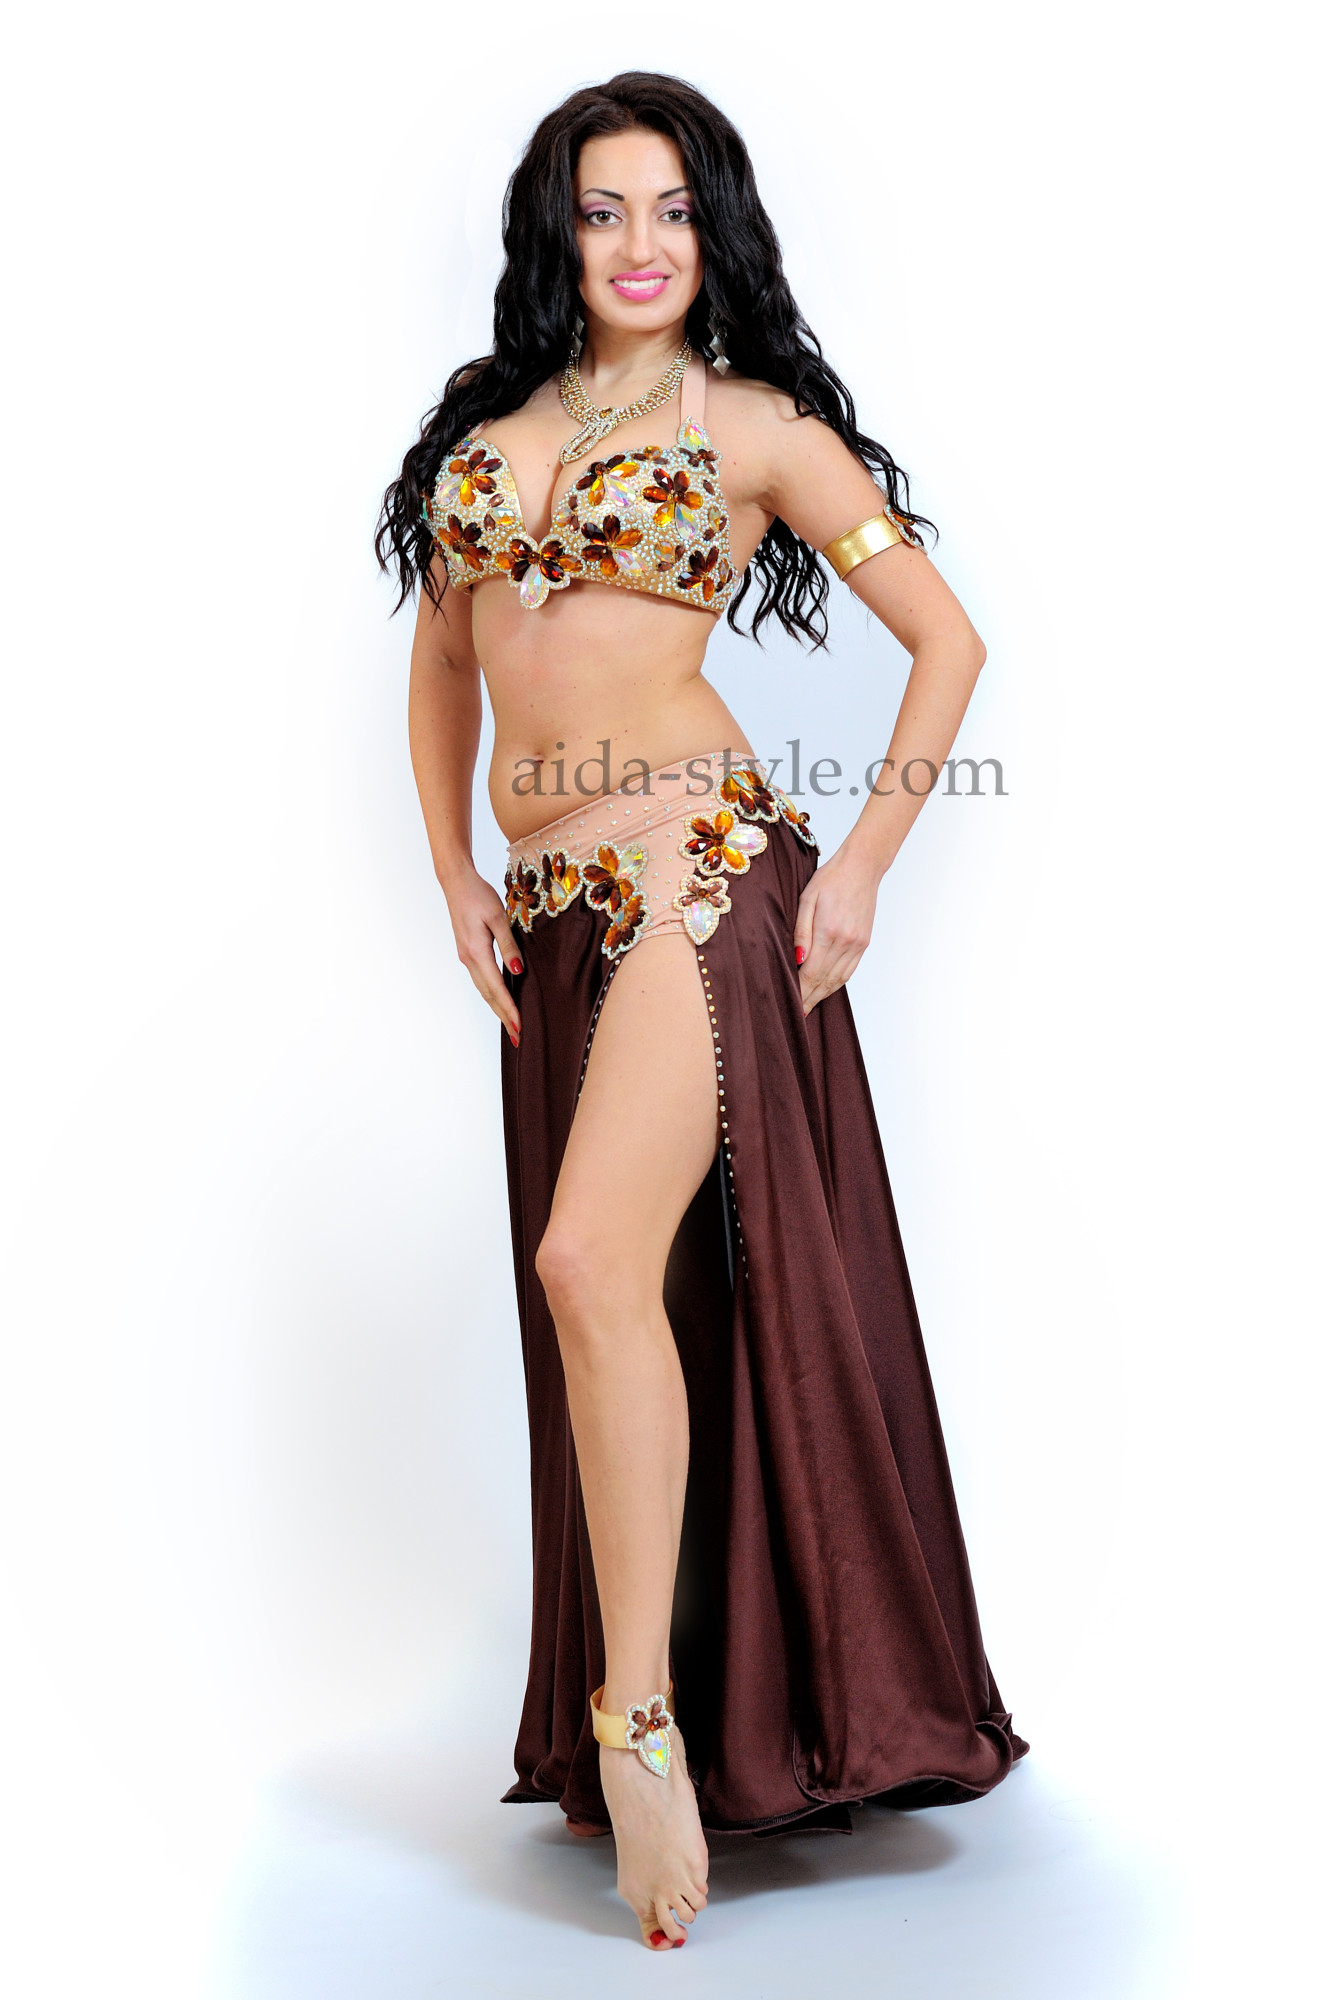 Beautiful brown professional belly dance costume decorated with golden stones